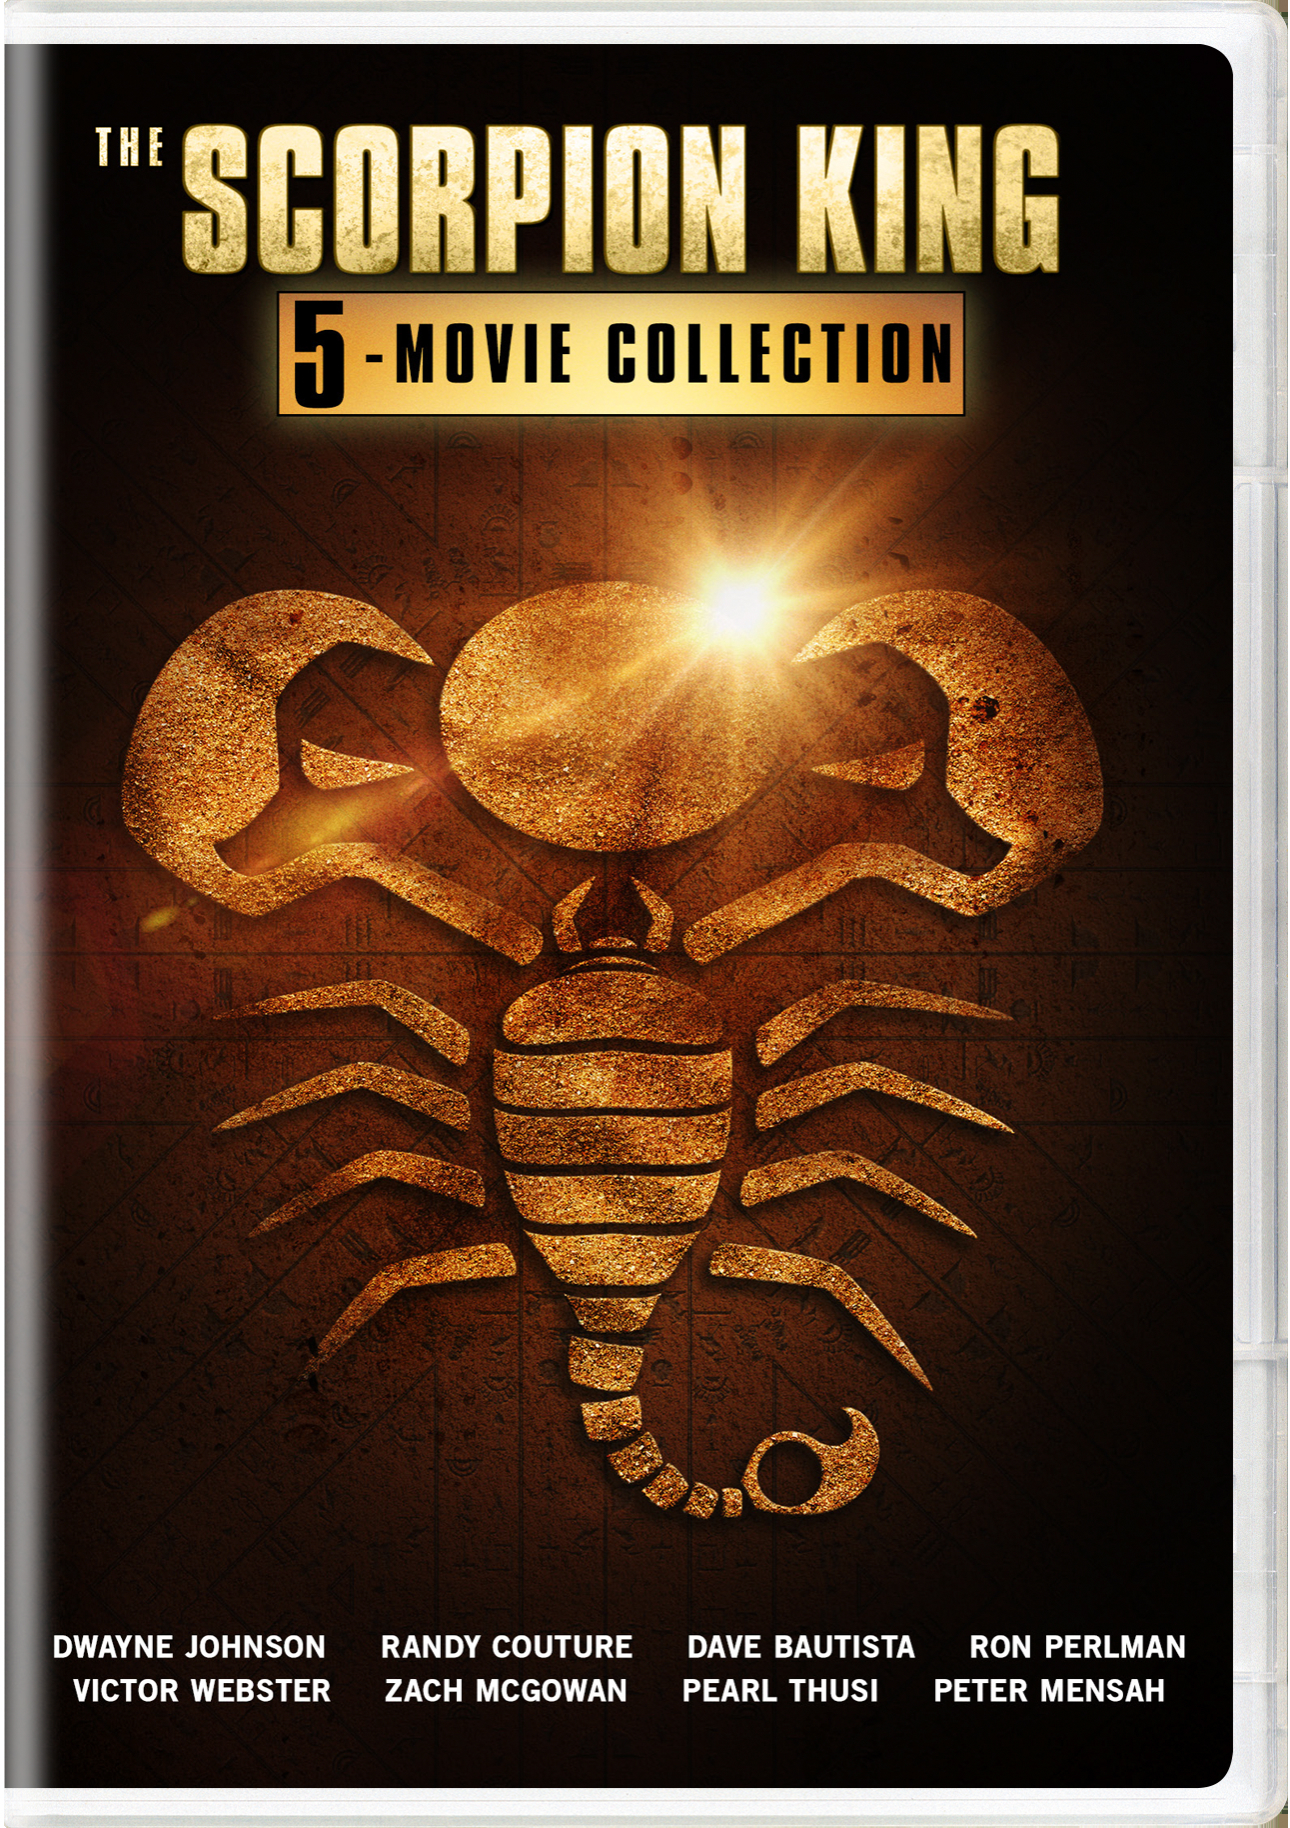 The Scorpion King: 5-movie Collection [DVD] | CLICKII.com